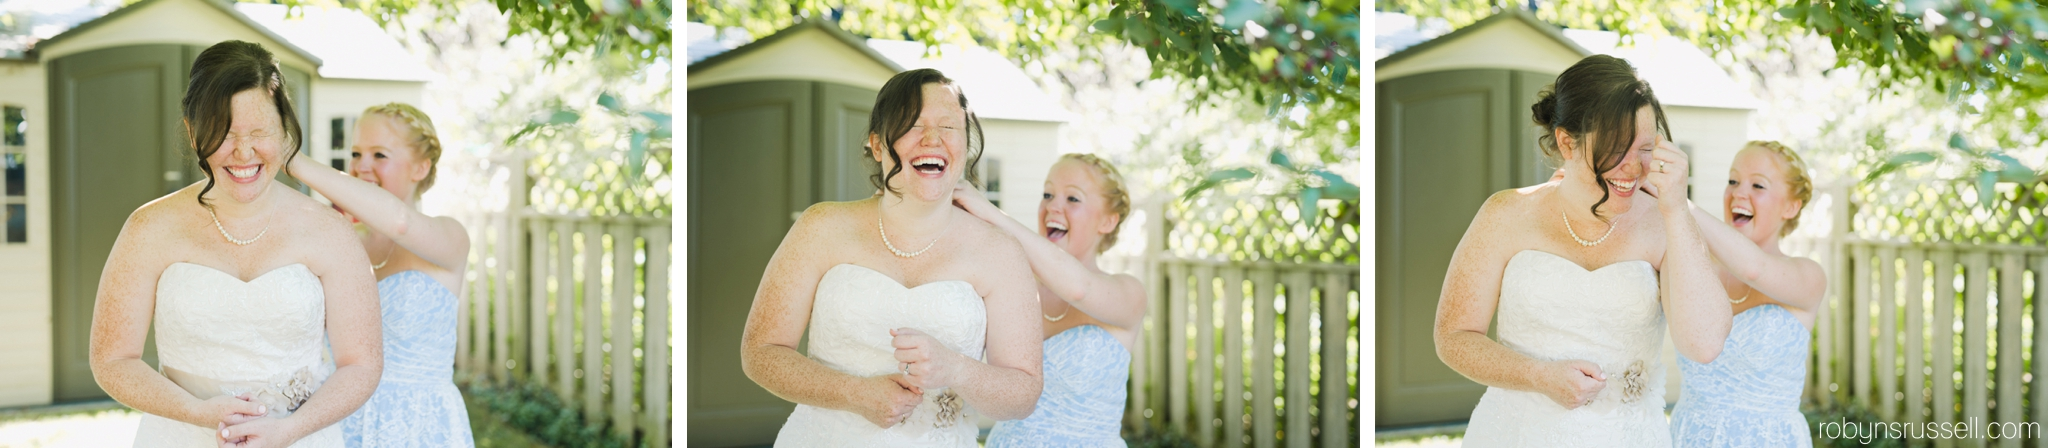 3-silly-moments-with-bridesmaid.jpg